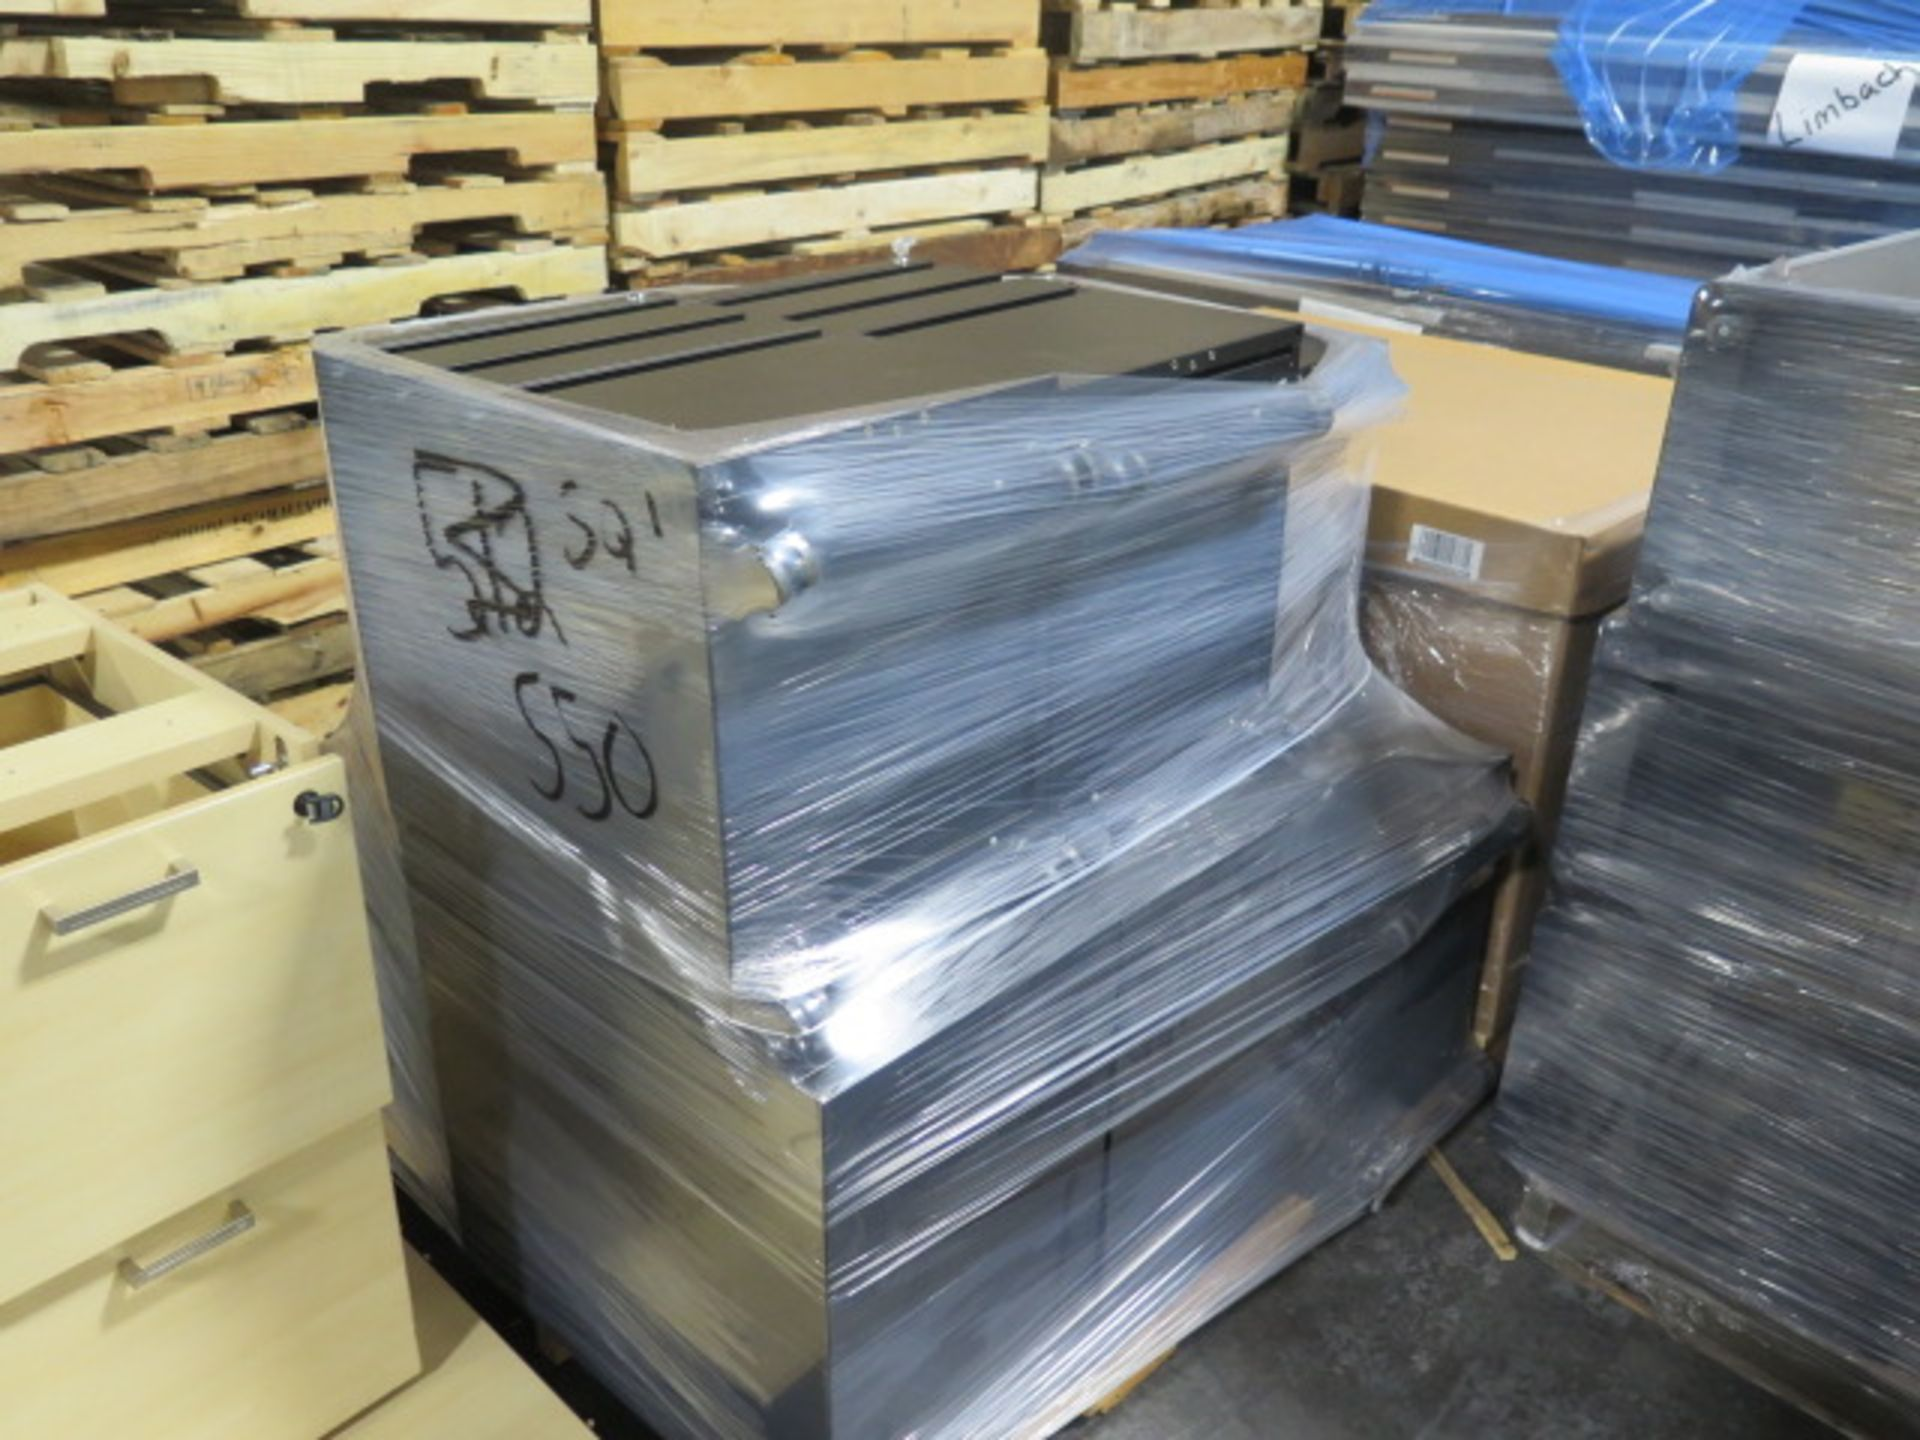 Large Quantity of Office Partitions, Desks, File Cabinets and Storage Cabinets (SOLD AS-IS - NO WARA - Image 3 of 24